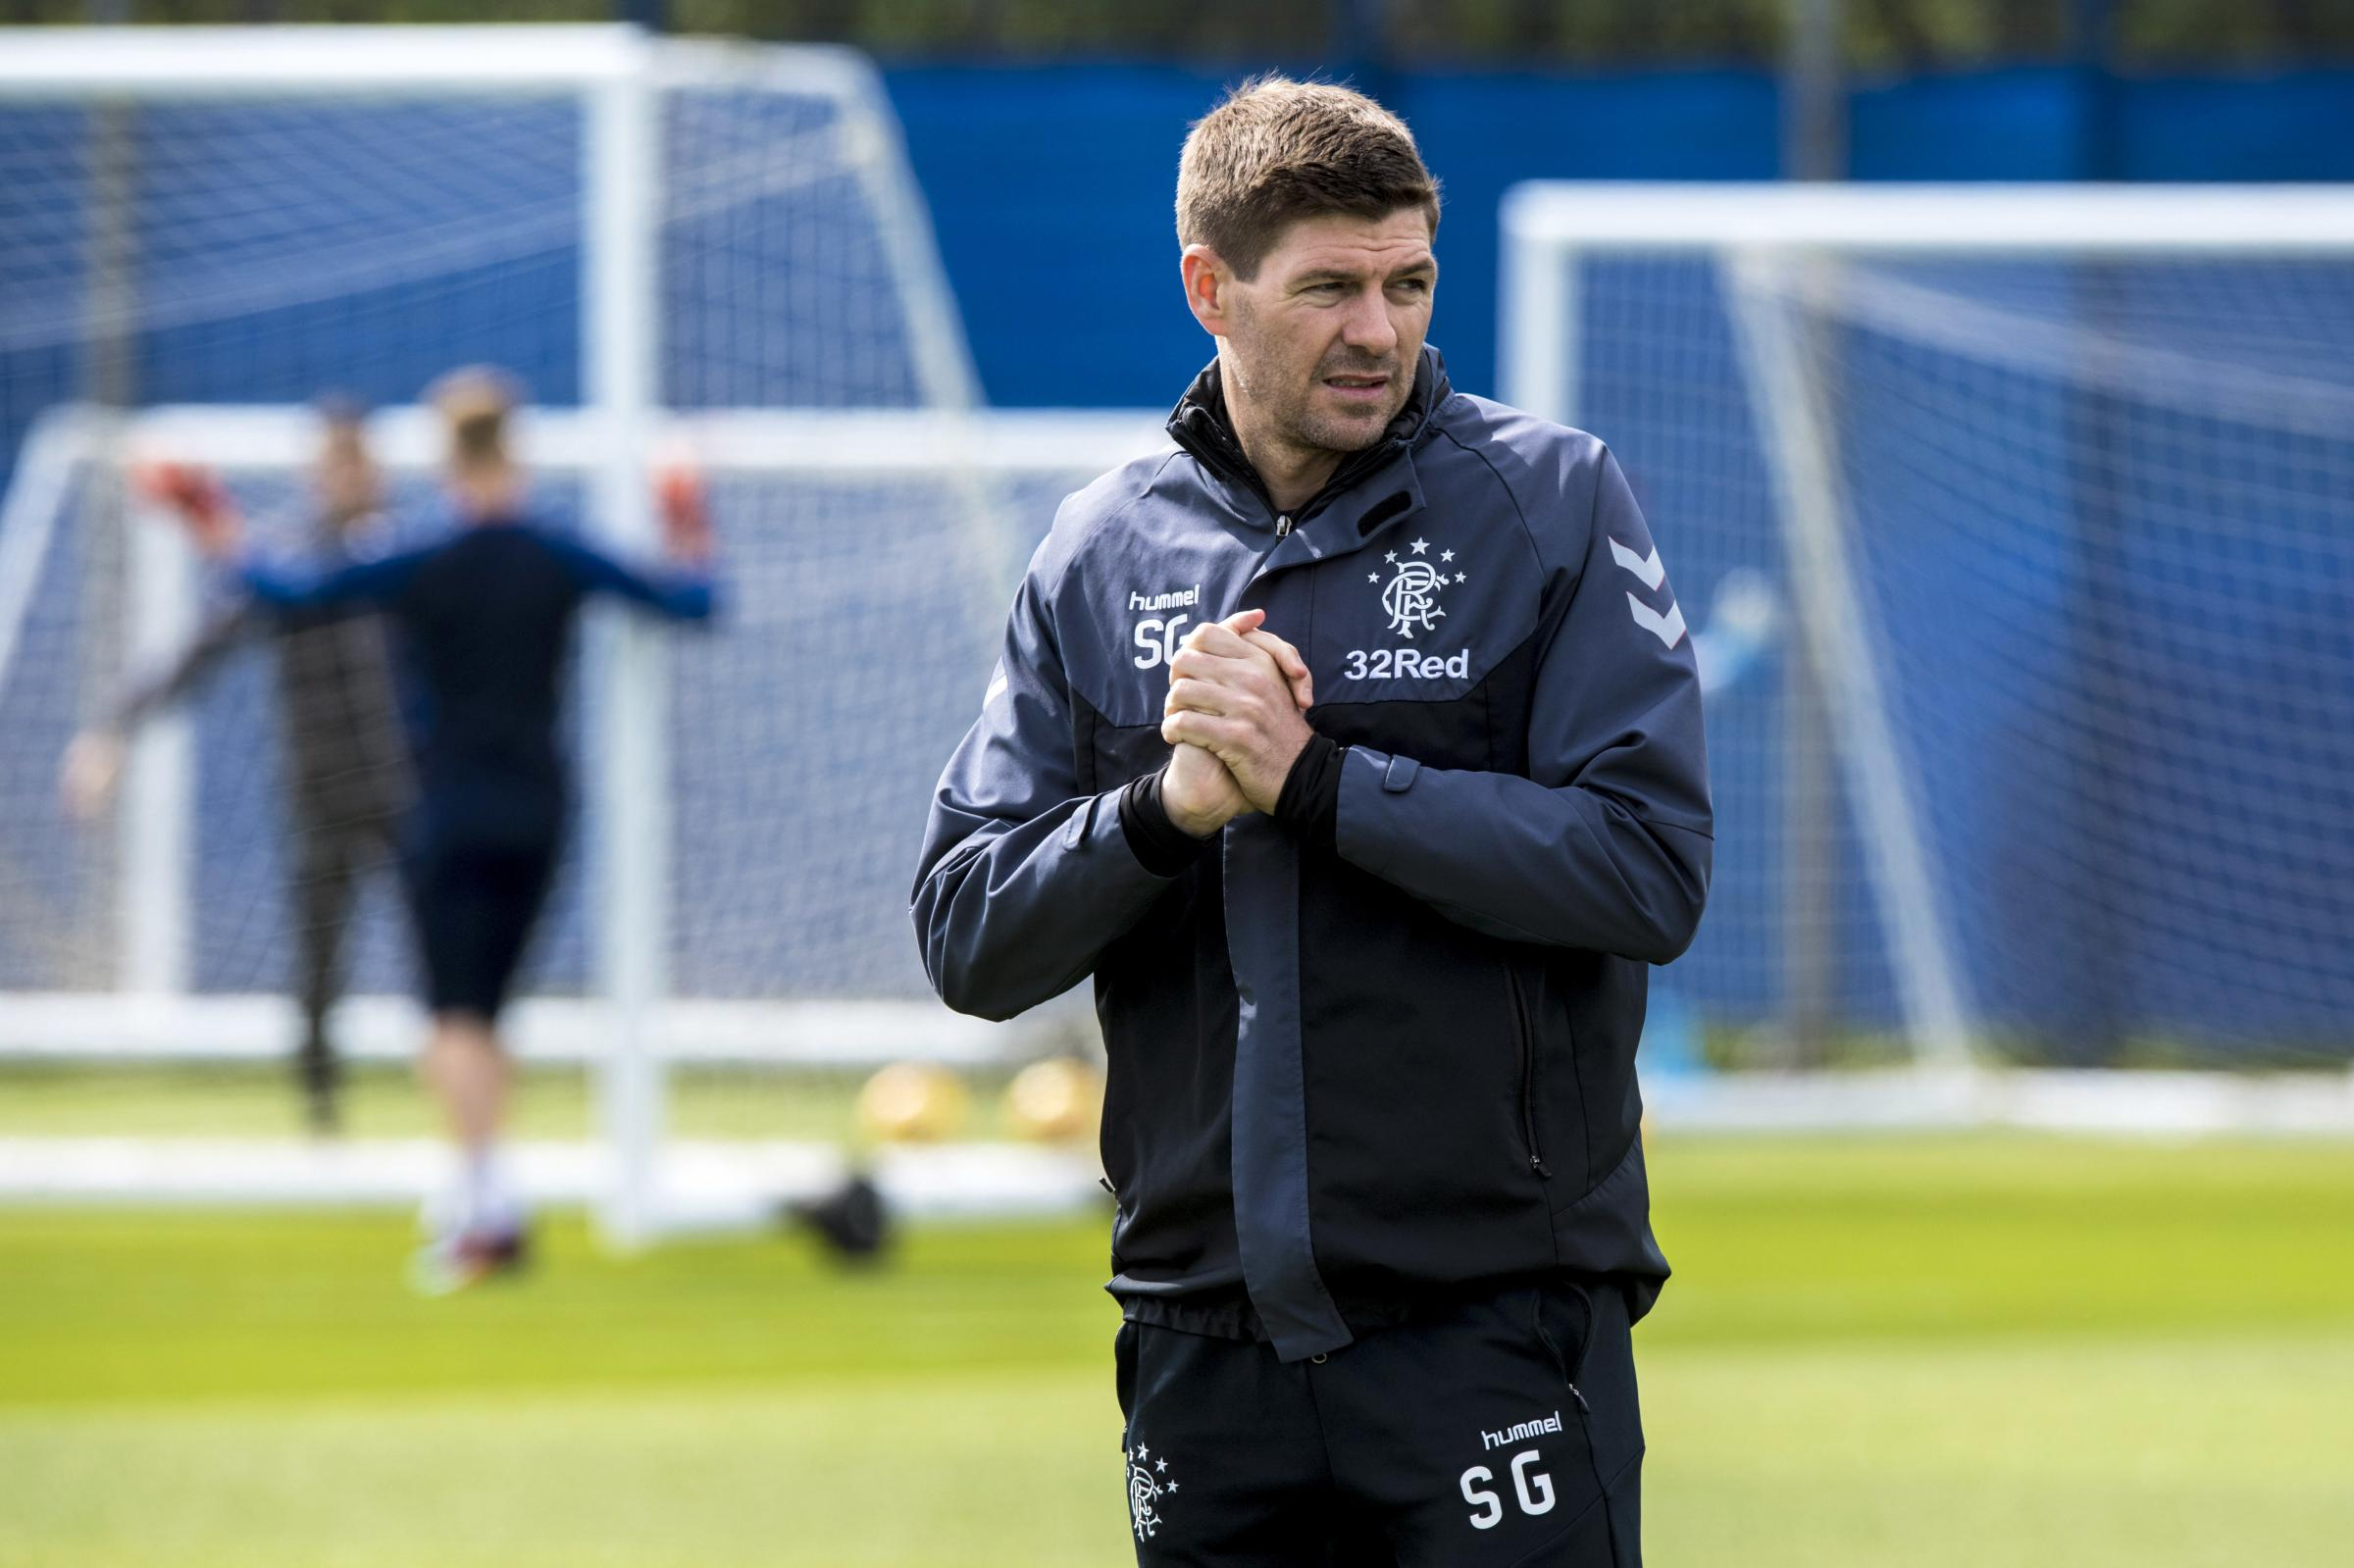 Chris Jack: Arrivals could make Rangers title contenders but the decks need to be cleared at Ibrox